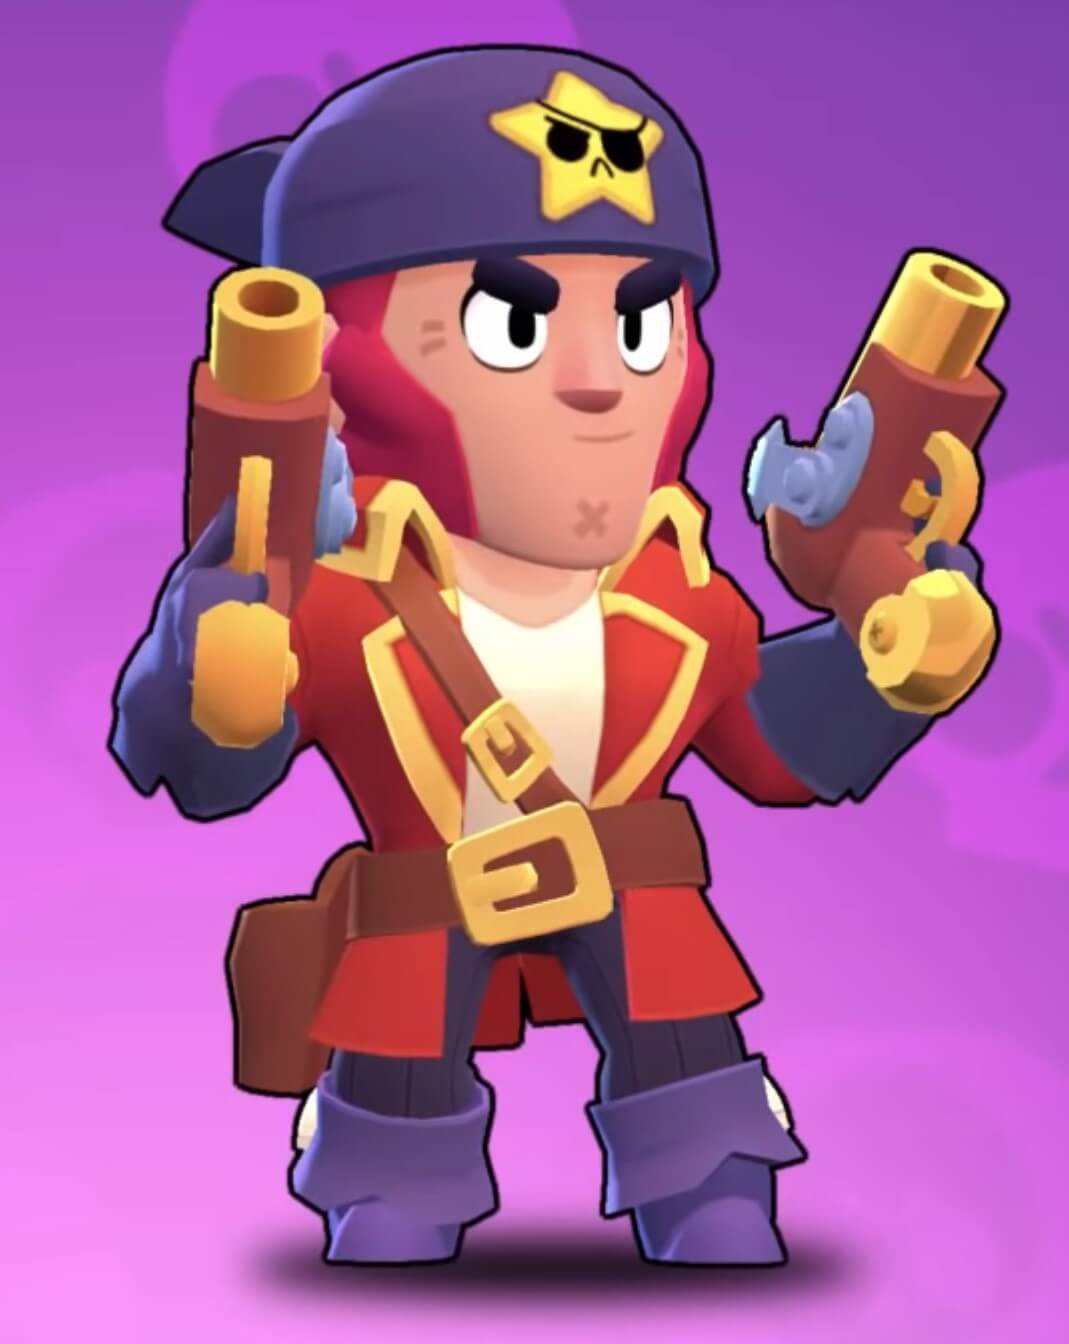 Corsair Colt Brawl Stars December Update